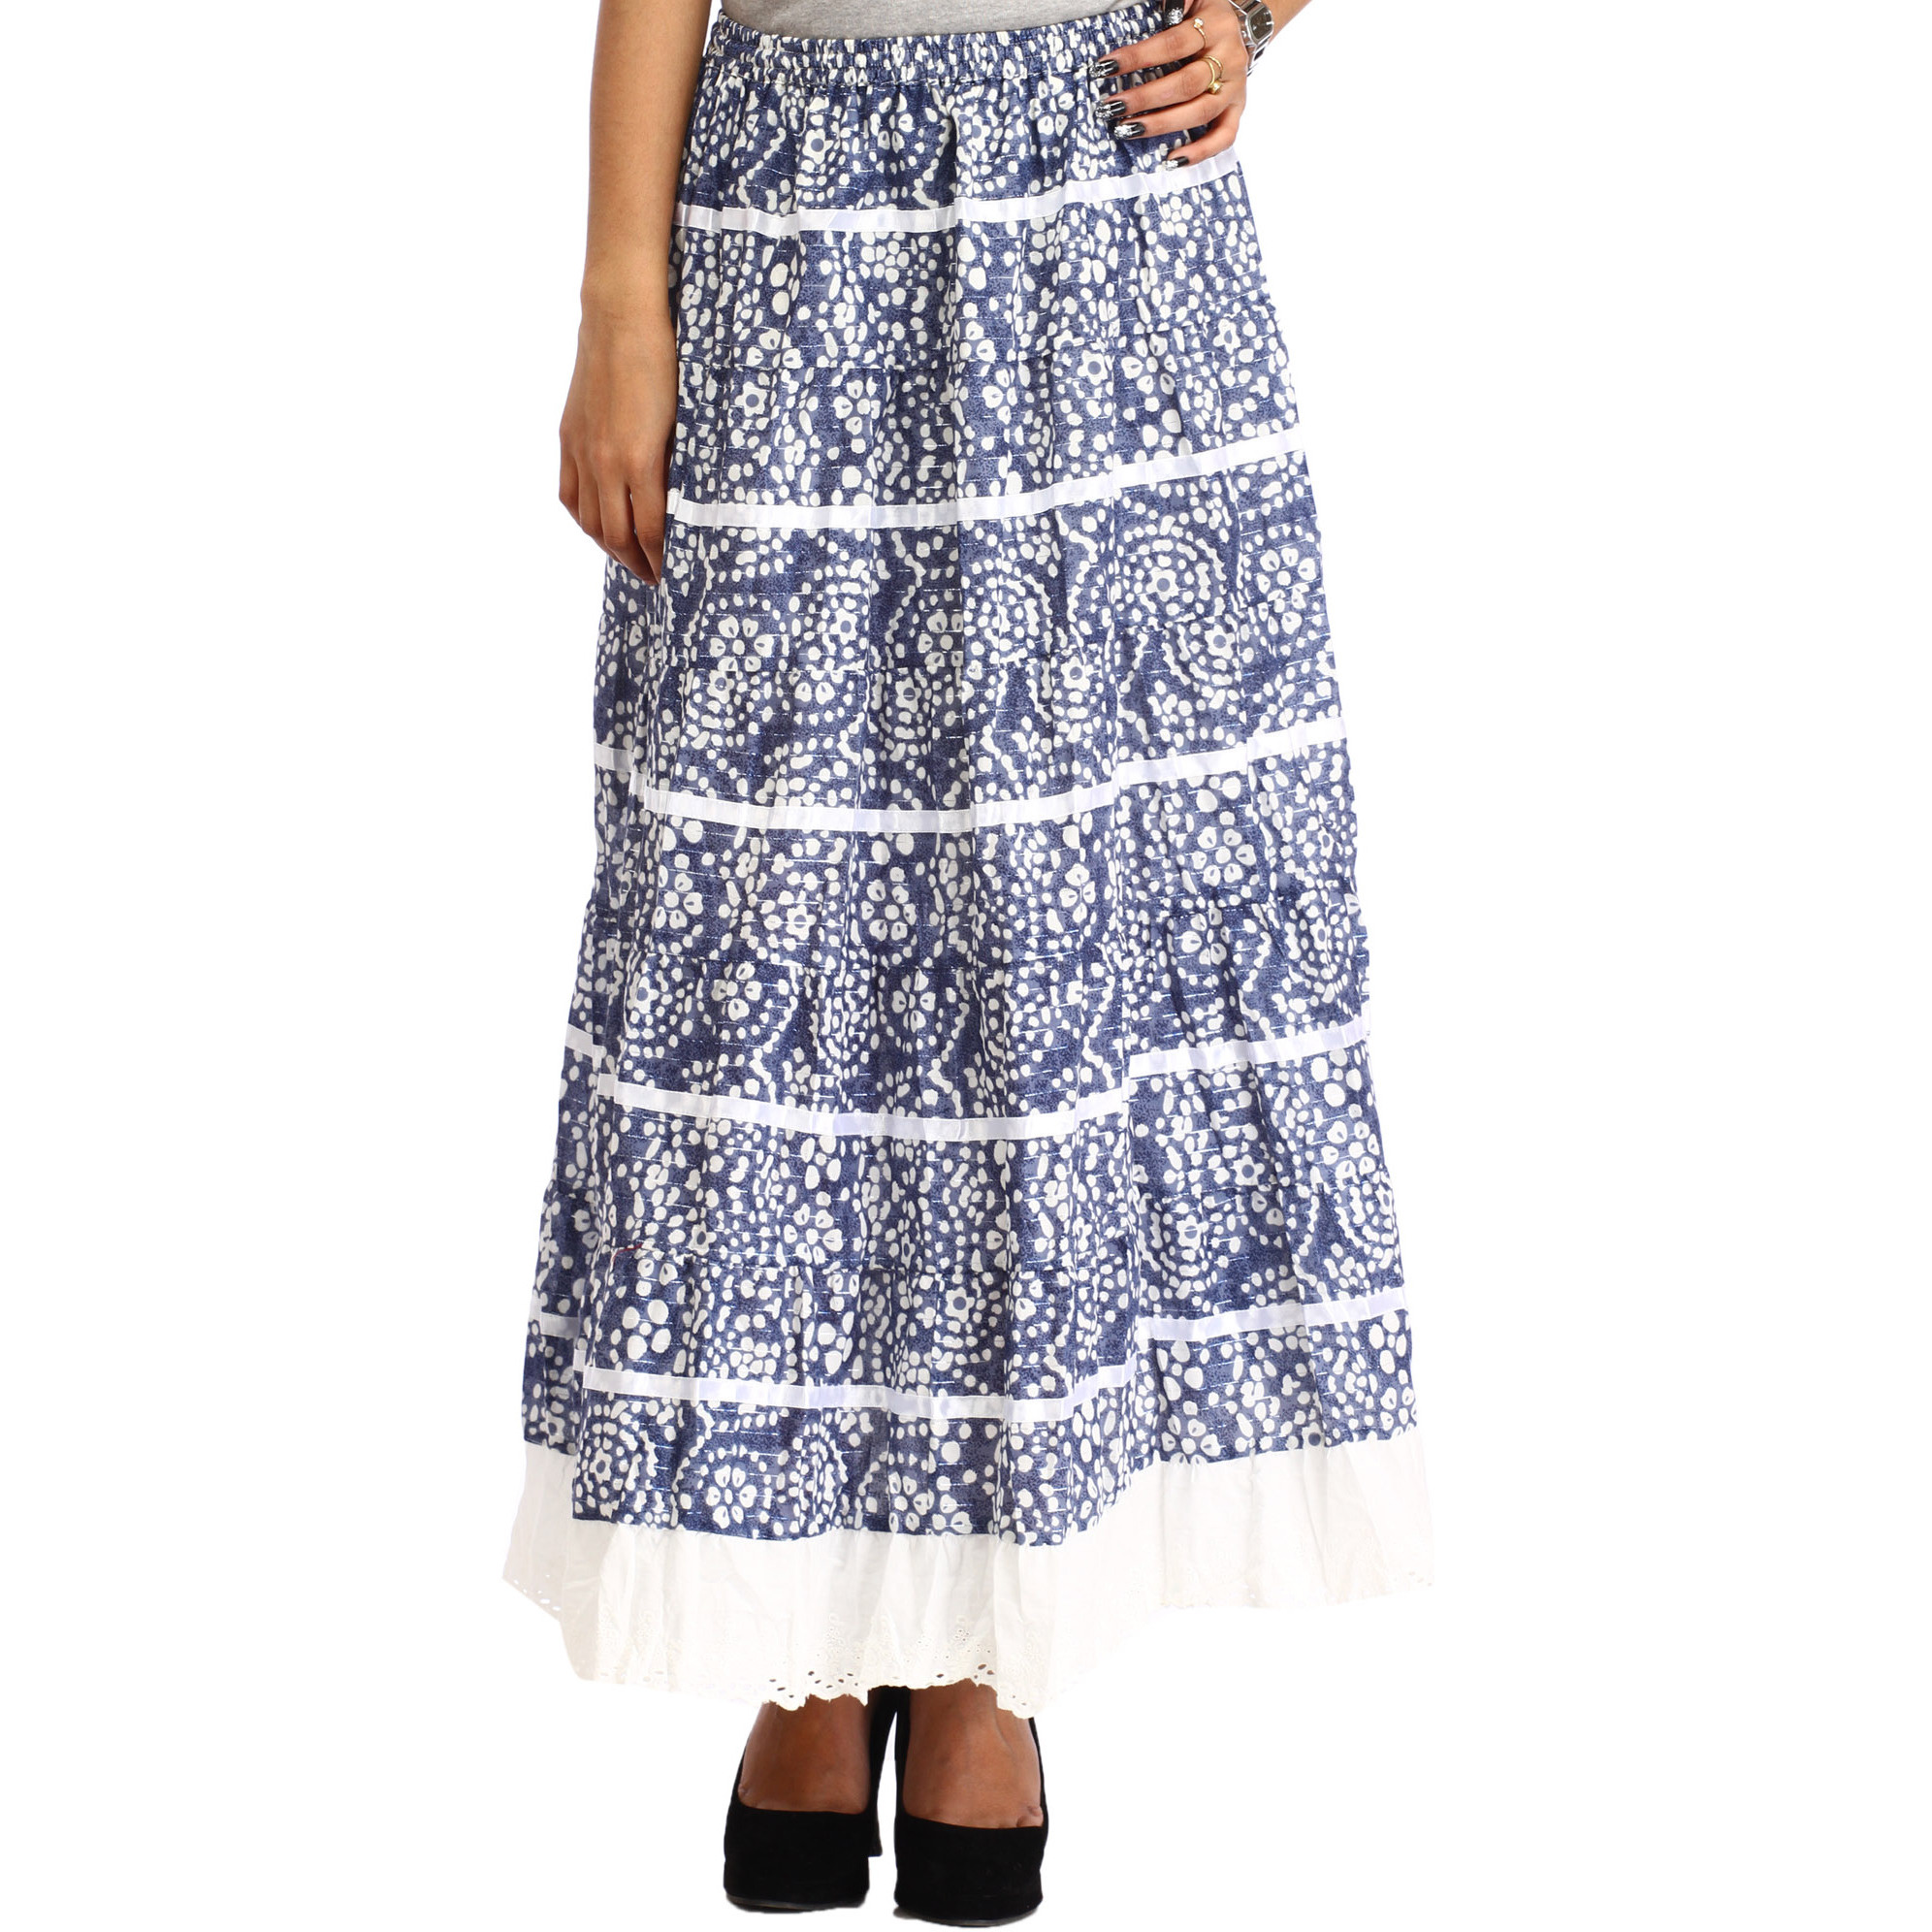 Moonlight-Blue Long Elastic Skirt with Floral Print and Cut-work on Border